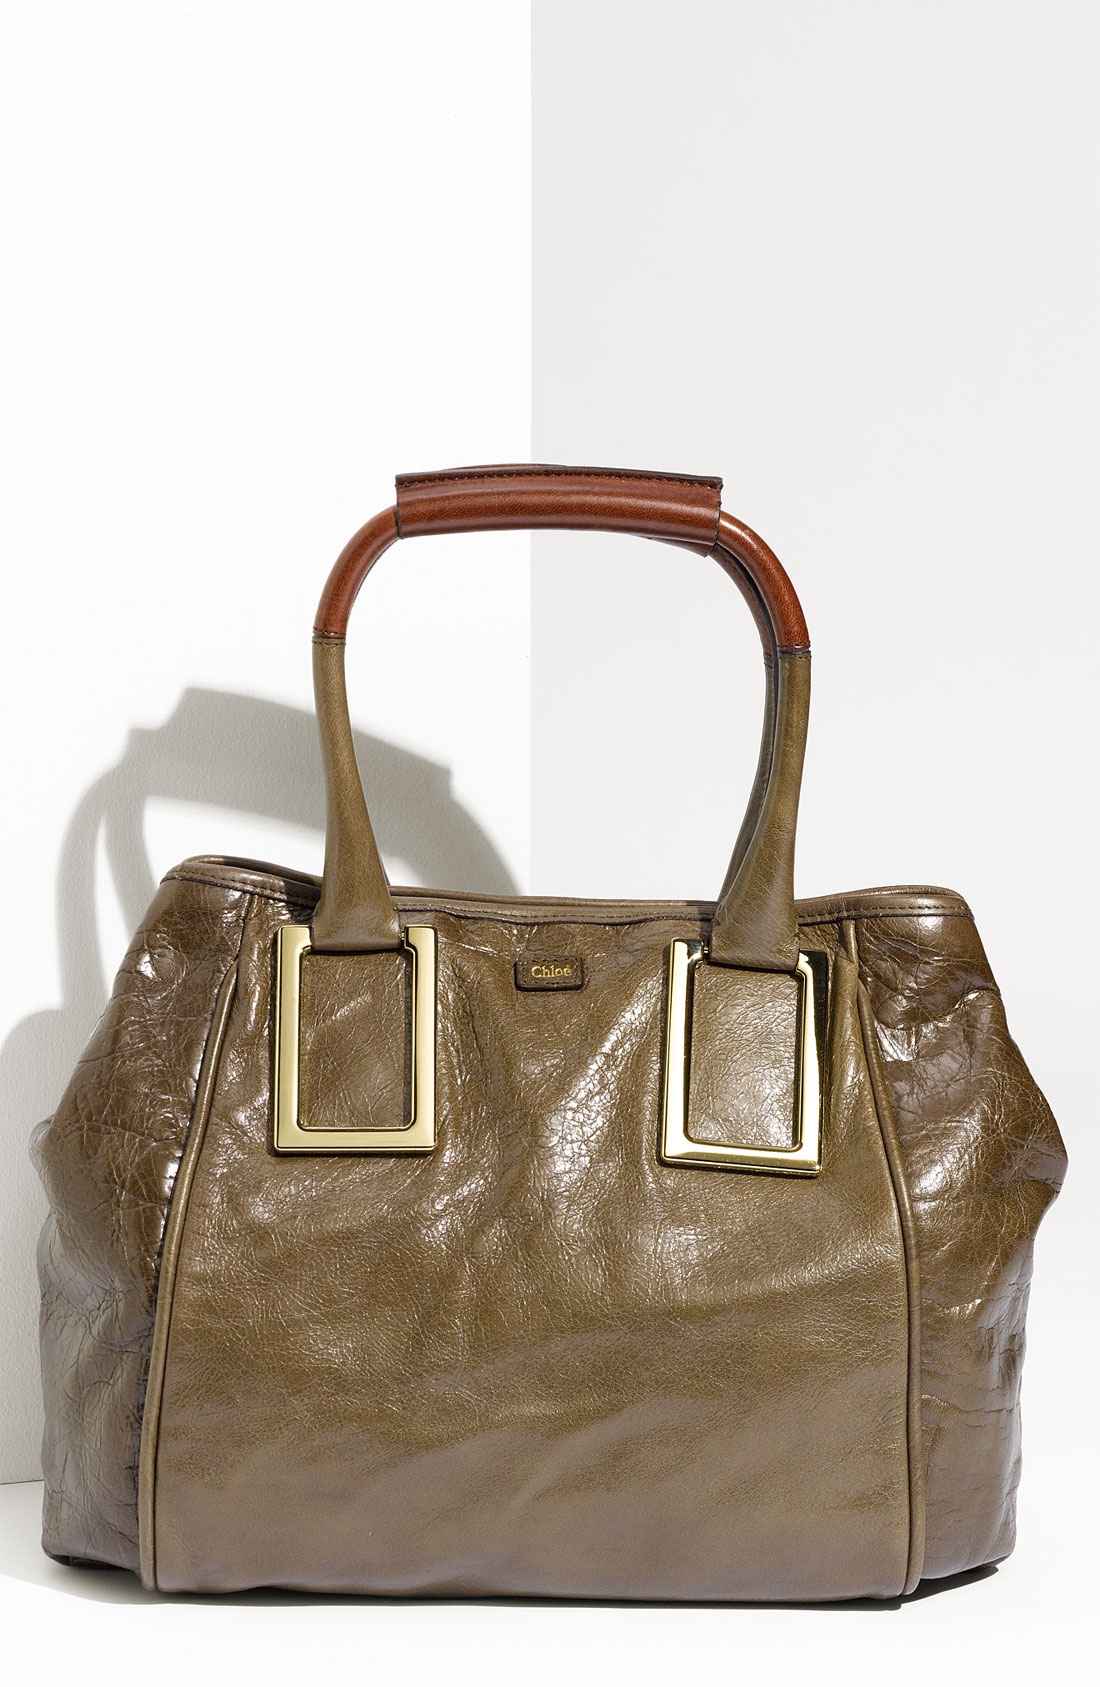 Chlo¨¦ Ethel - New Leather Tote in Brown (anthracite) | Lyst